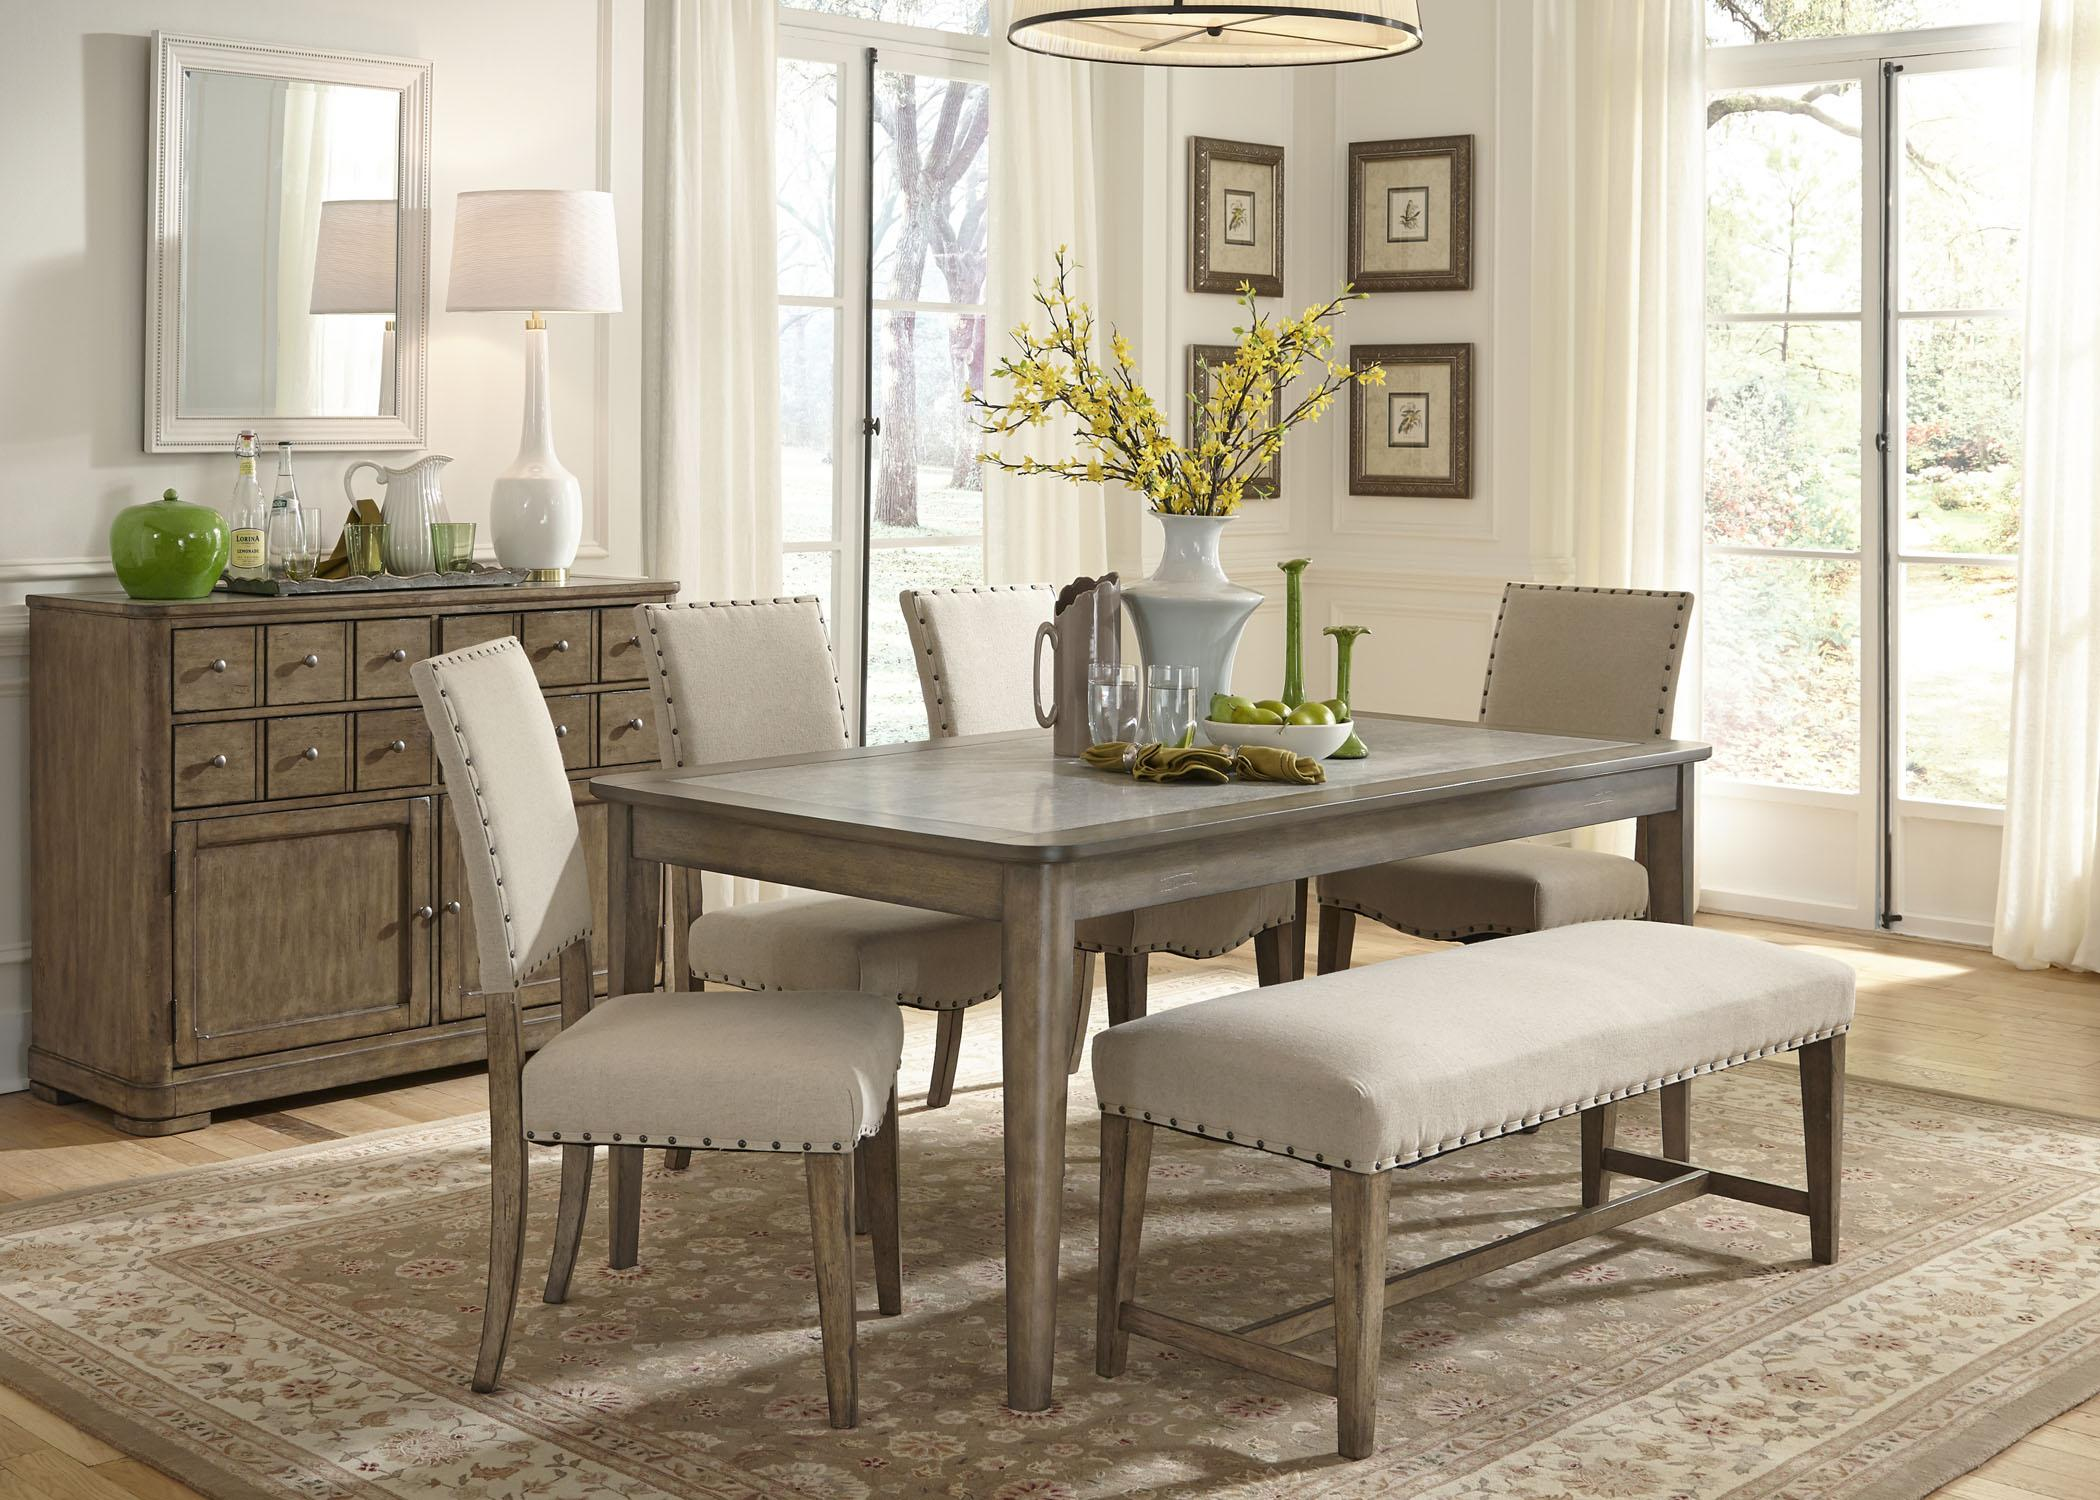 Weatherford Rustic Casual 6 Piece Dining Table And Chairs Set With Bench    Rotmans   Table U0026 Chair Set With Bench Worcester, Boston, MA, Providence,  RI, ... Part 54